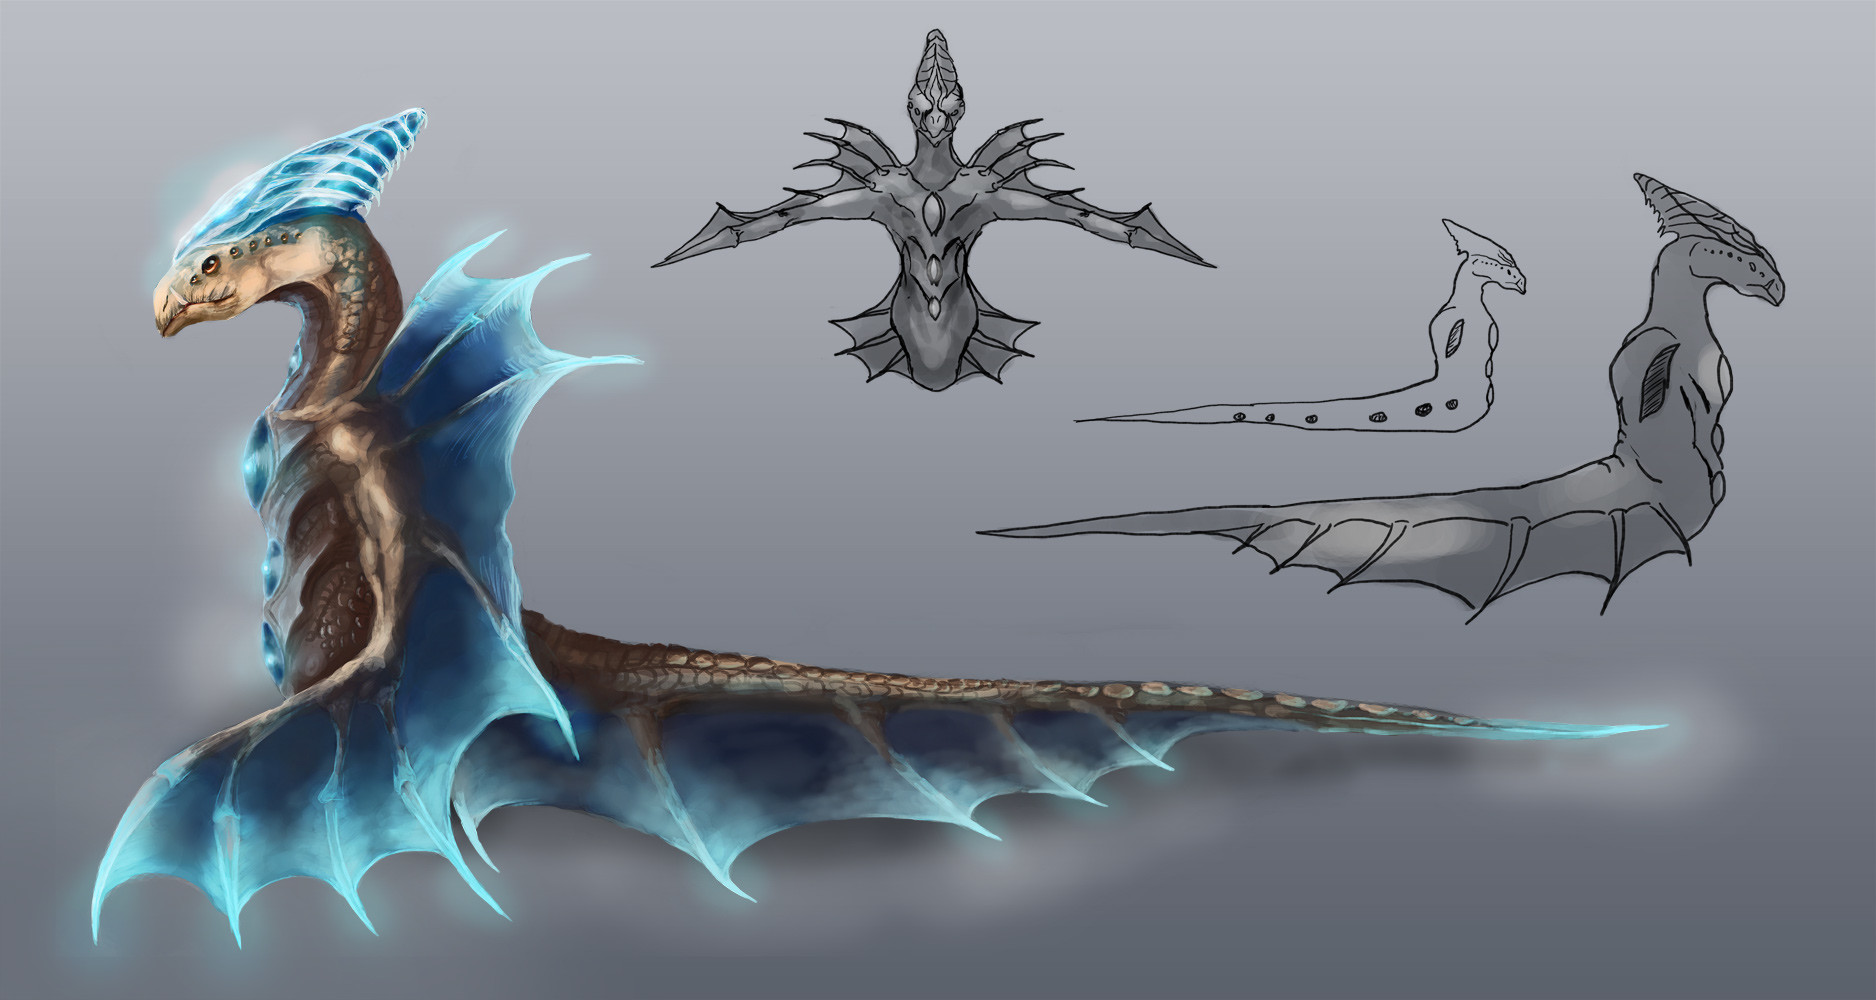 Orm irian sea creature by catharina wendland